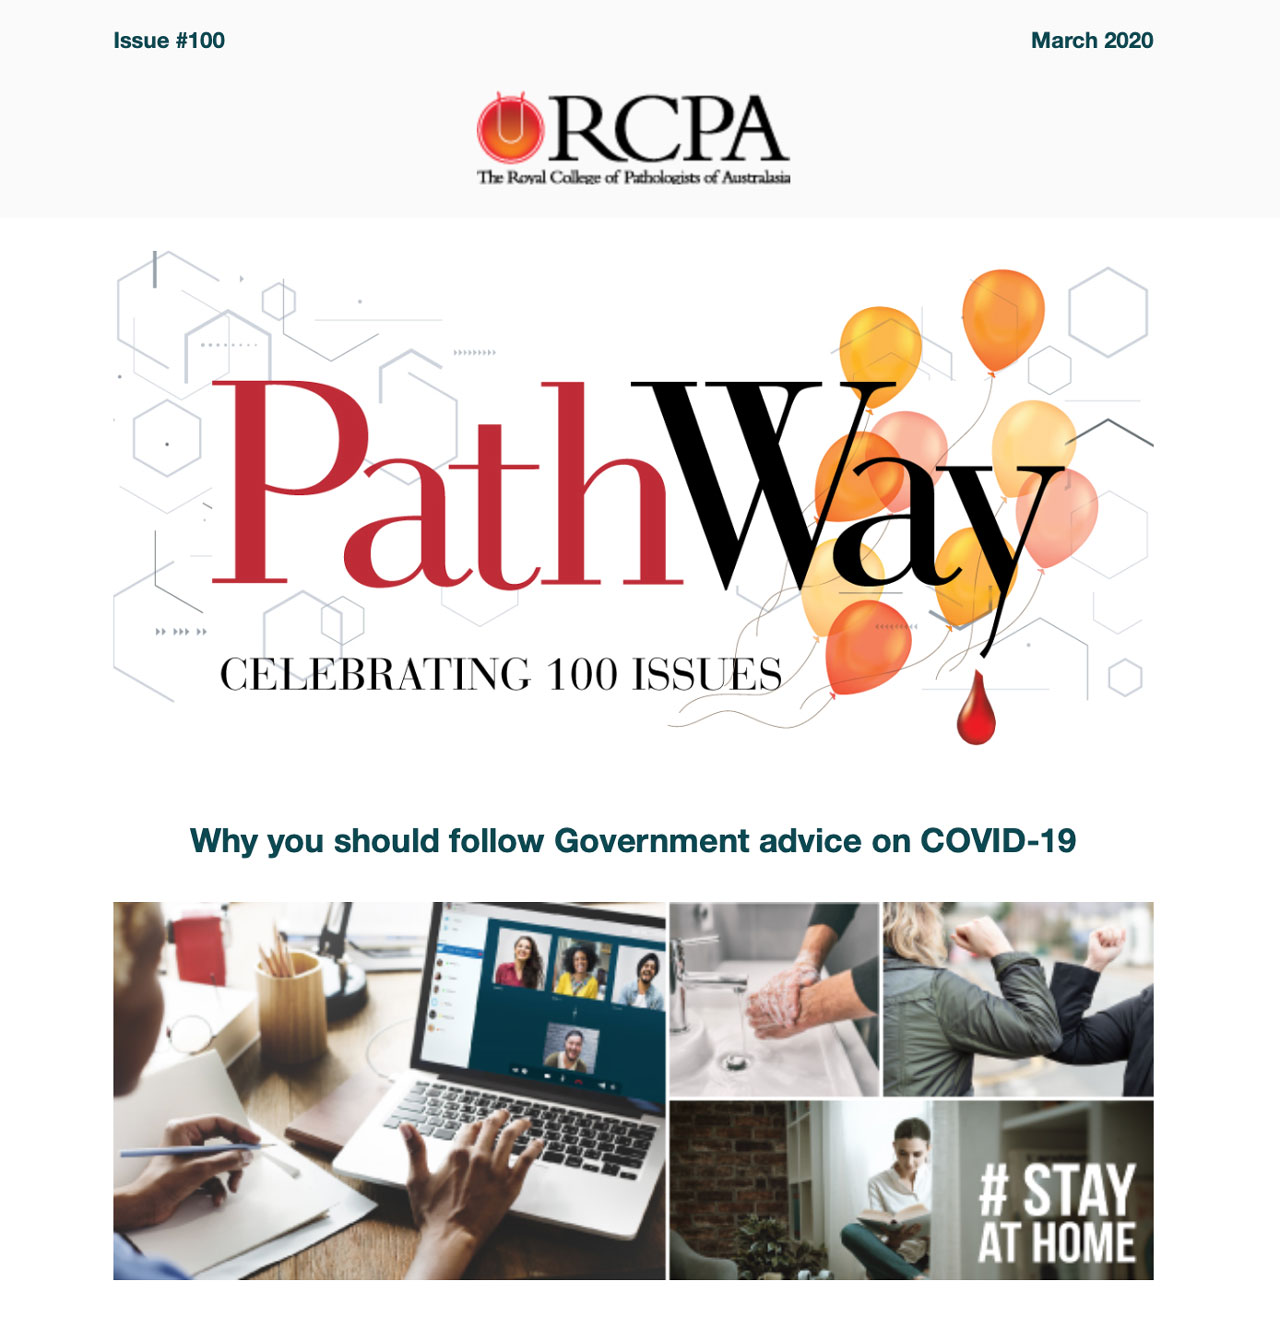 RCPA Pathway